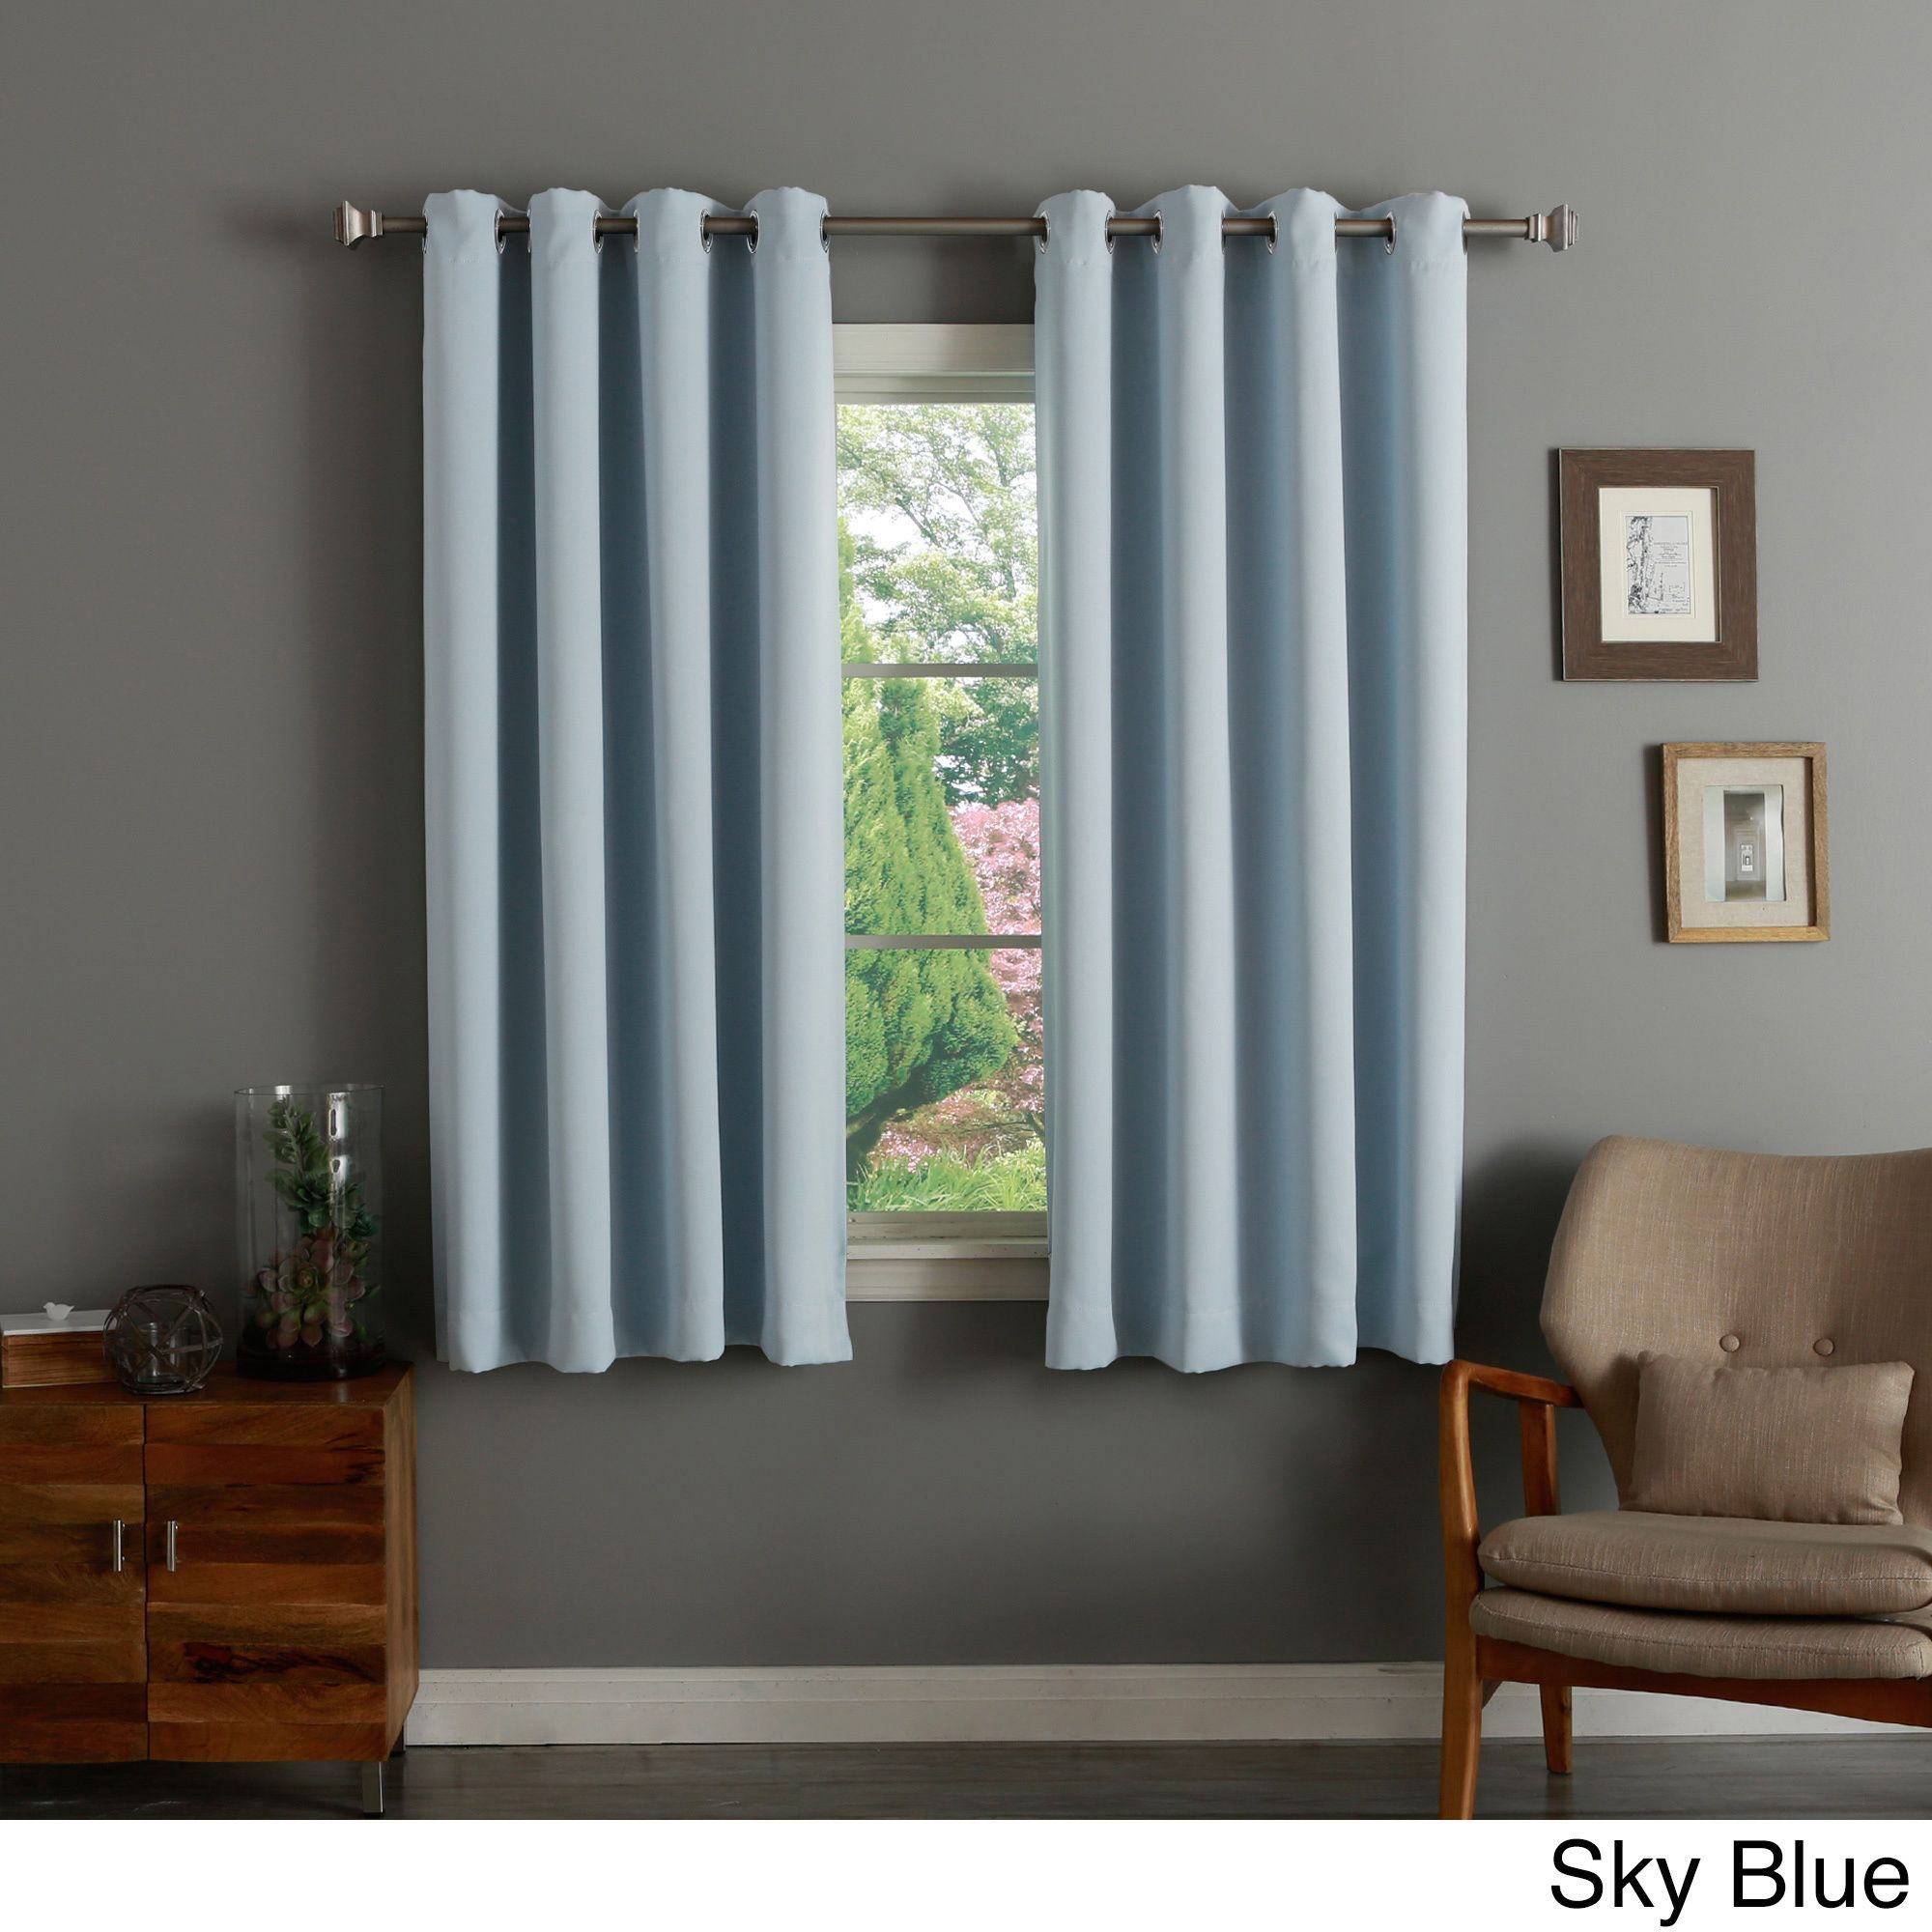 Aurora Home 52 Inch X 63 Inch Silvertone Grommet Top Thermal Pertaining To Silvertone Grommet Thermal Insulated Blackout Curtain Panel Pairs (View 9 of 30)